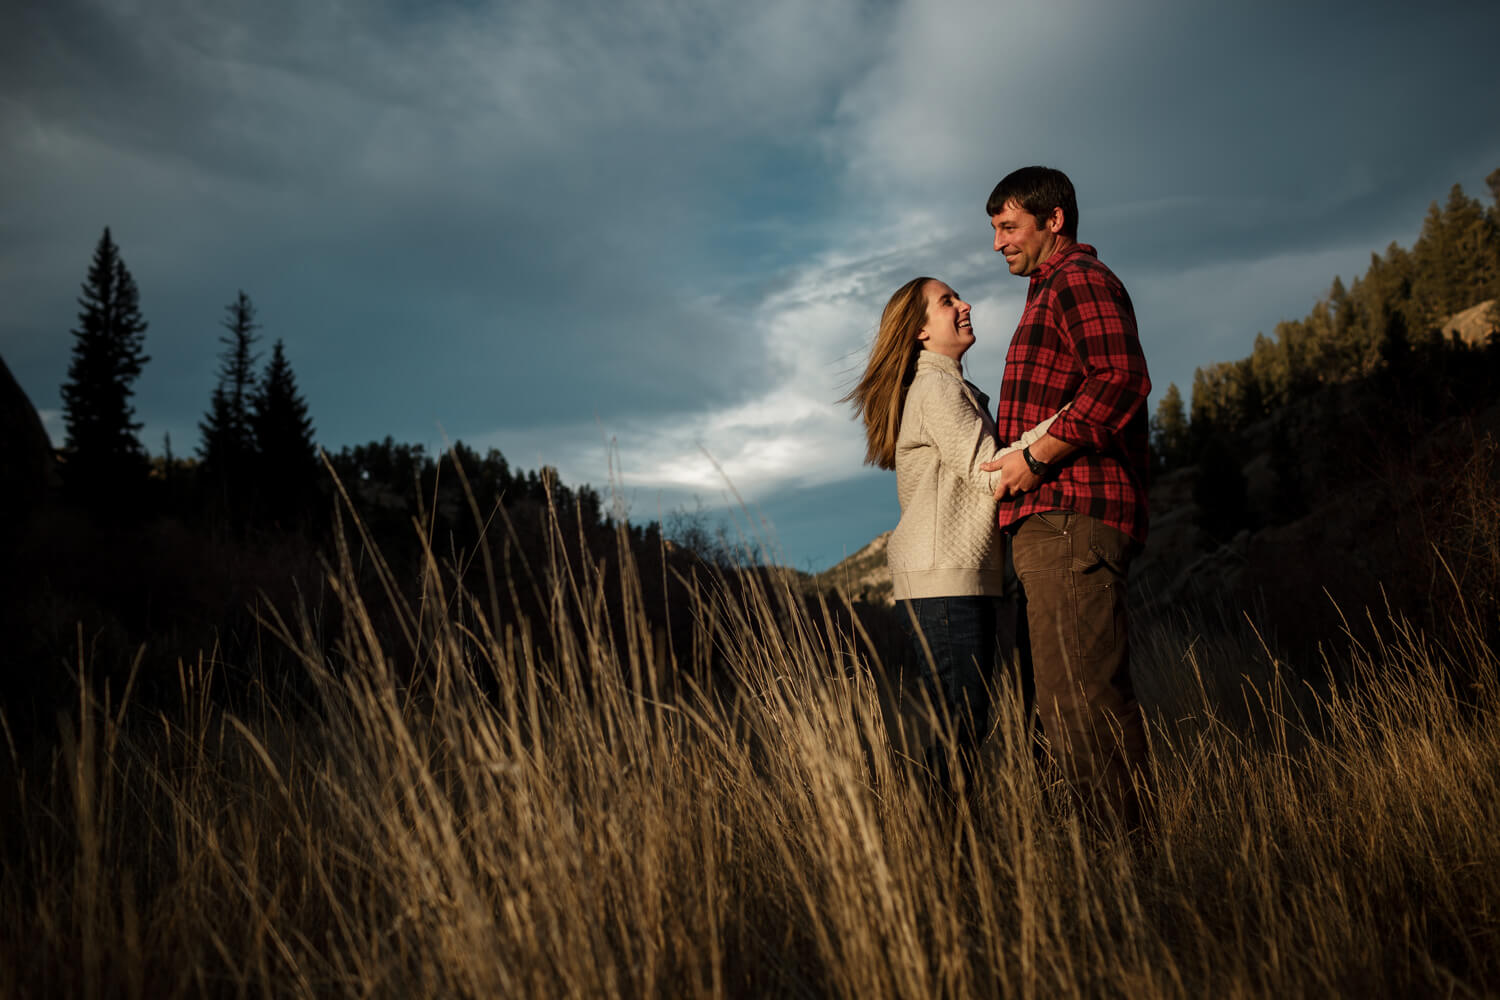 Setting sun illuminates a cute, outdoorsy engaged couple.